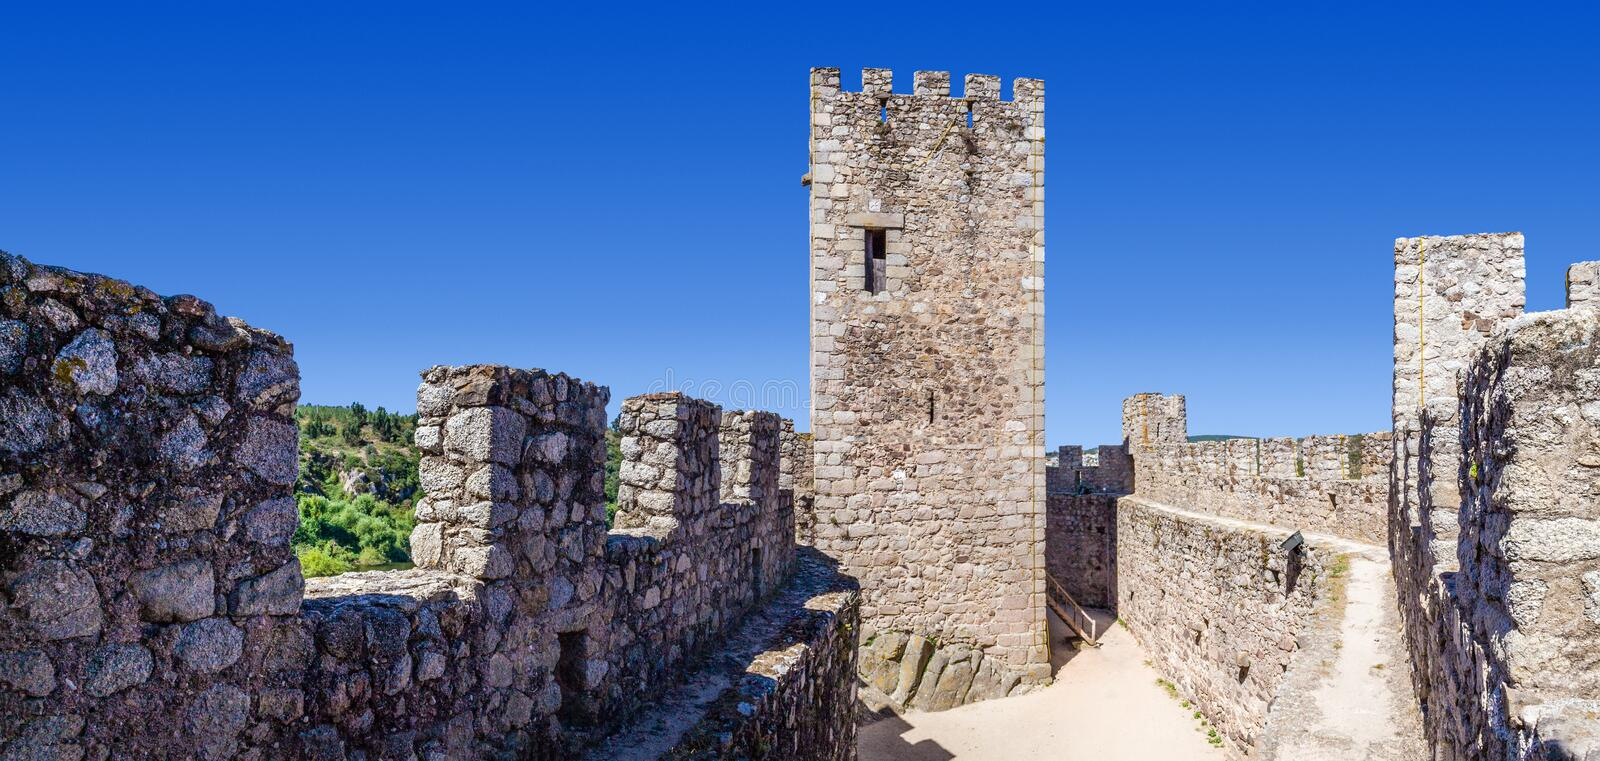 Keep and bailey of the Templar Castle of Almourol. One of the most famous castles in Portugal. Built on a rocky island in the middle of Tagus river stock photography